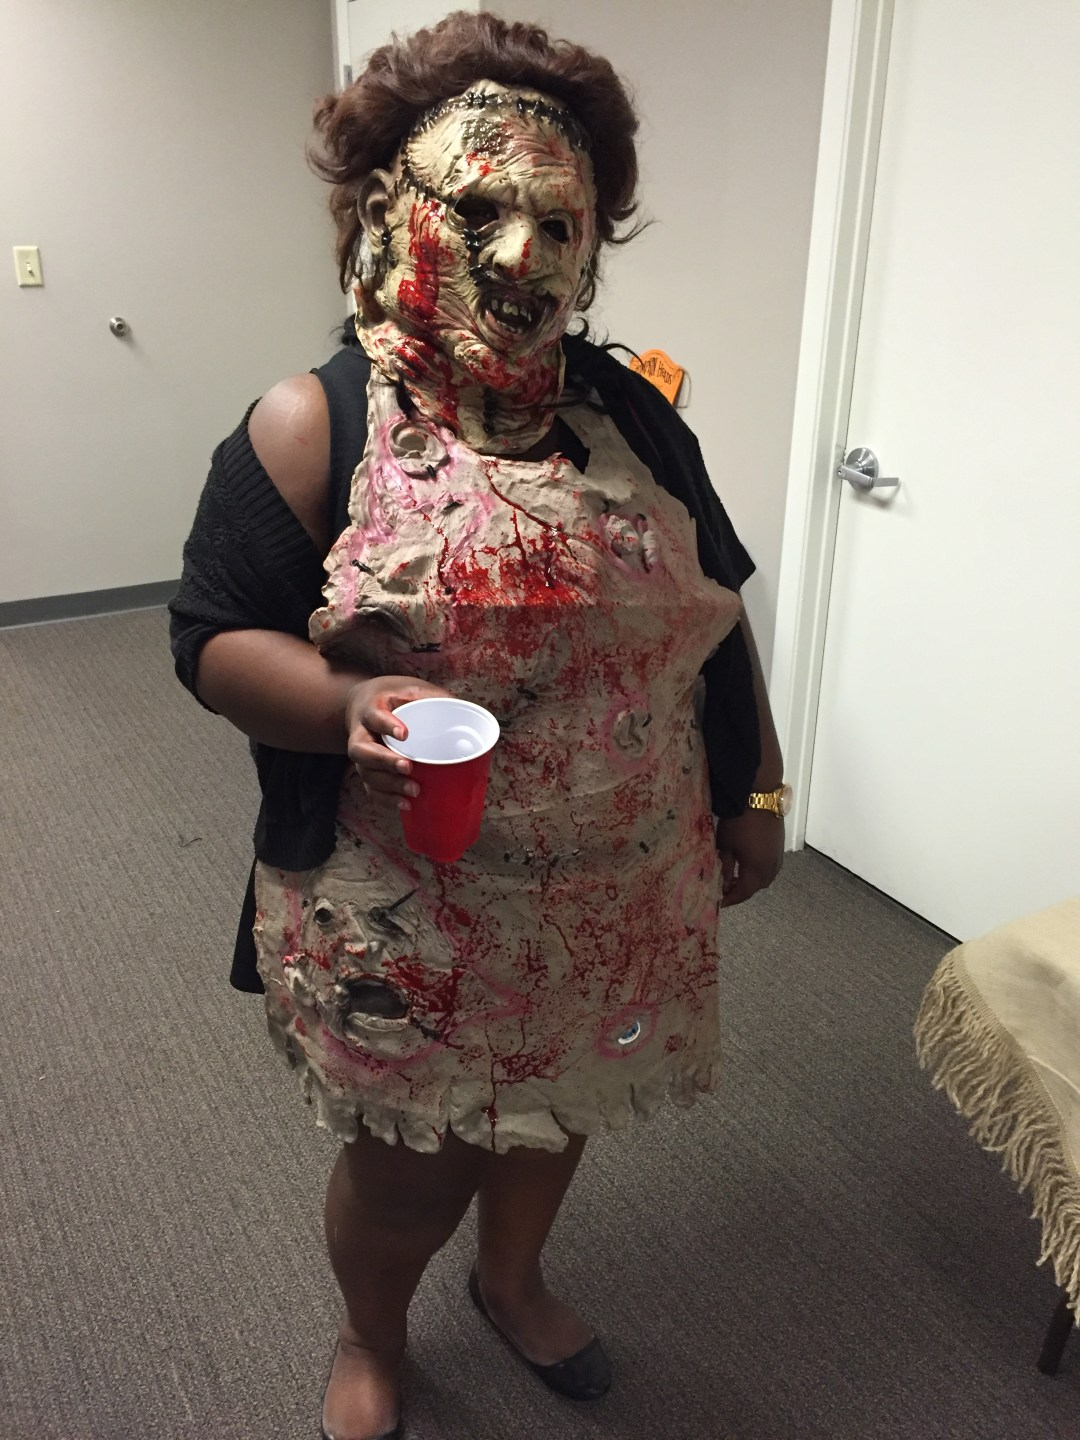 Dorothy scares Driver's Alert employees with this shocking display of gore.